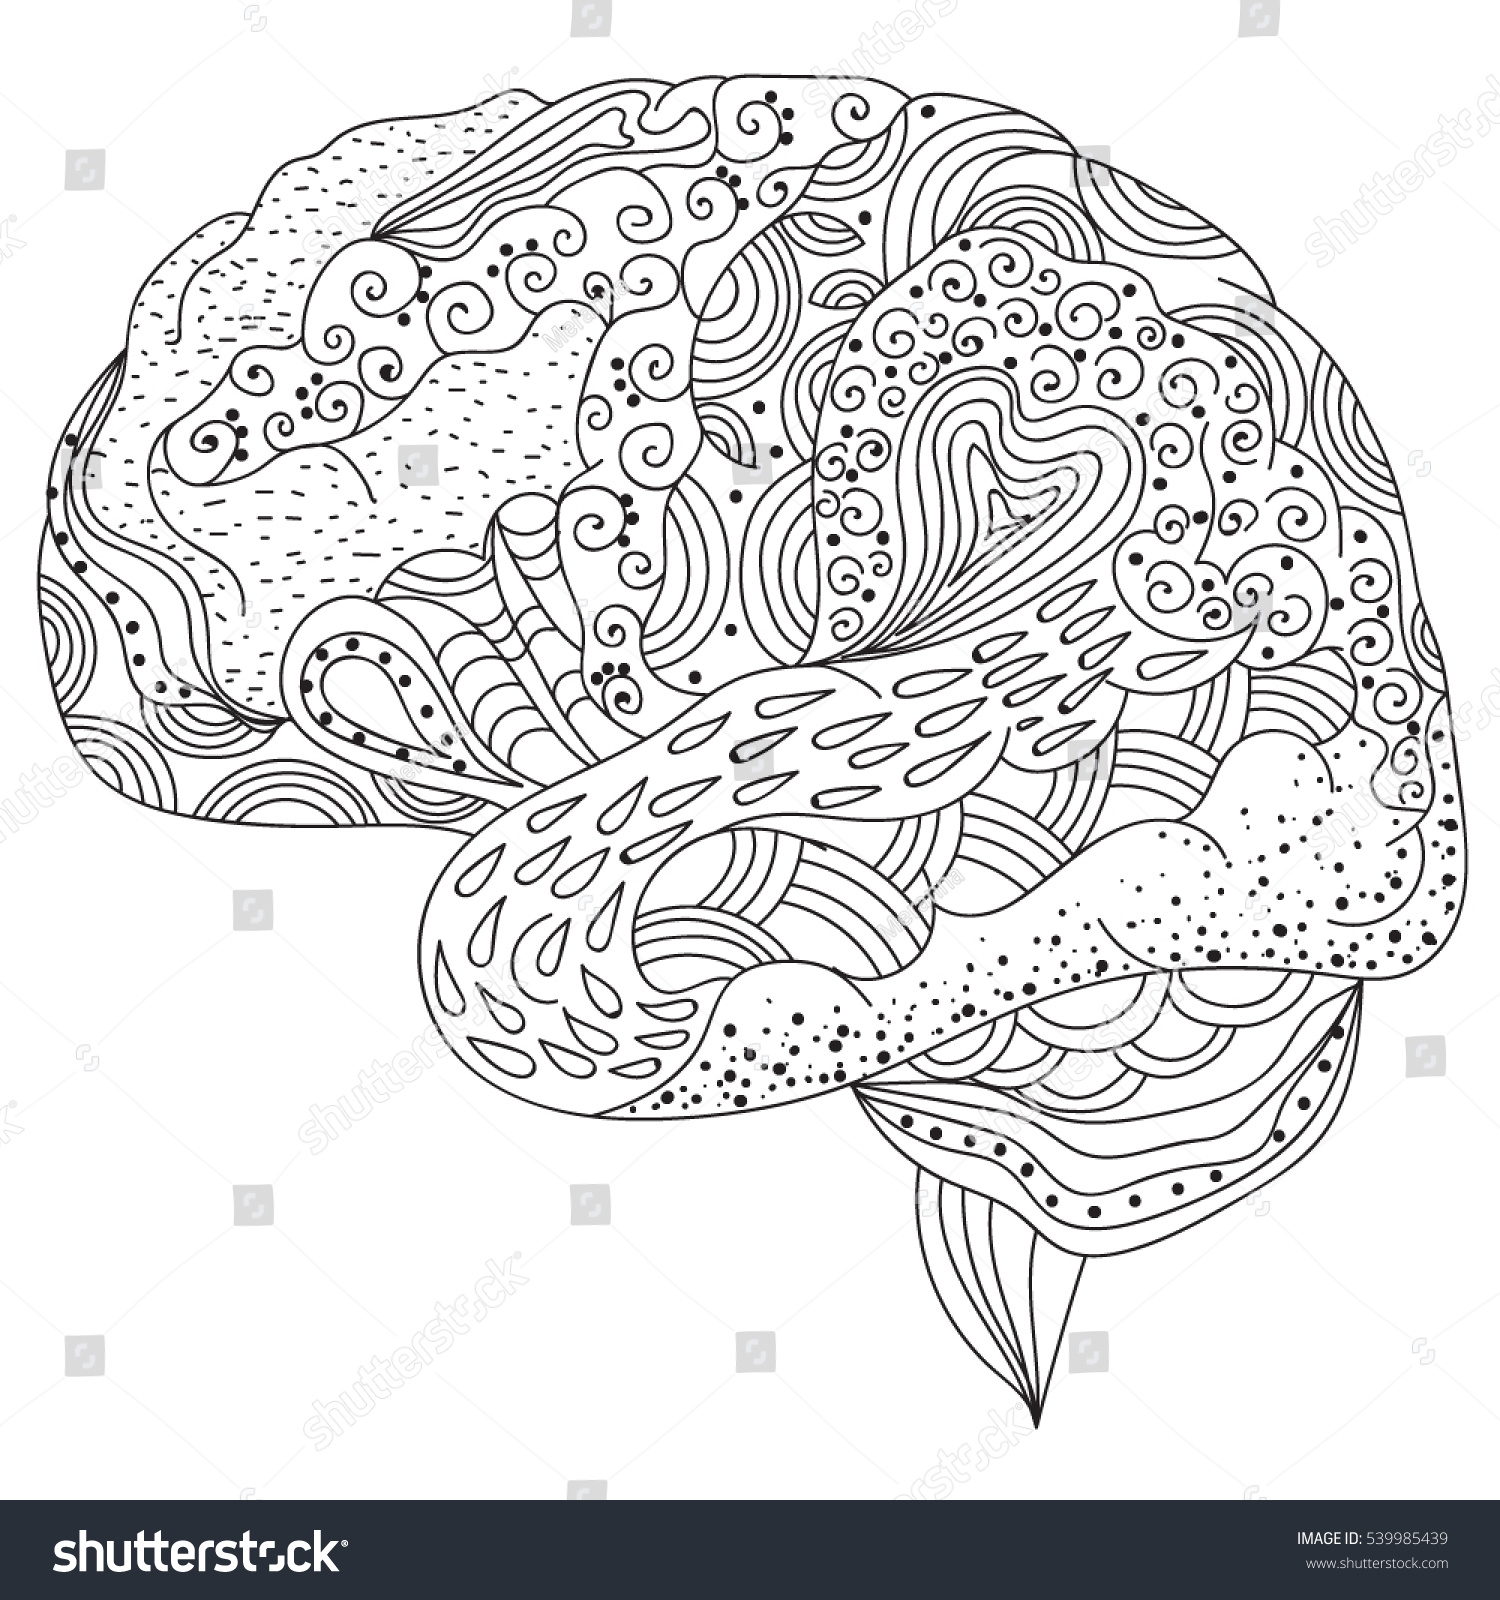 Human Brain Doodle Decorative Curves Creative Stock Vector